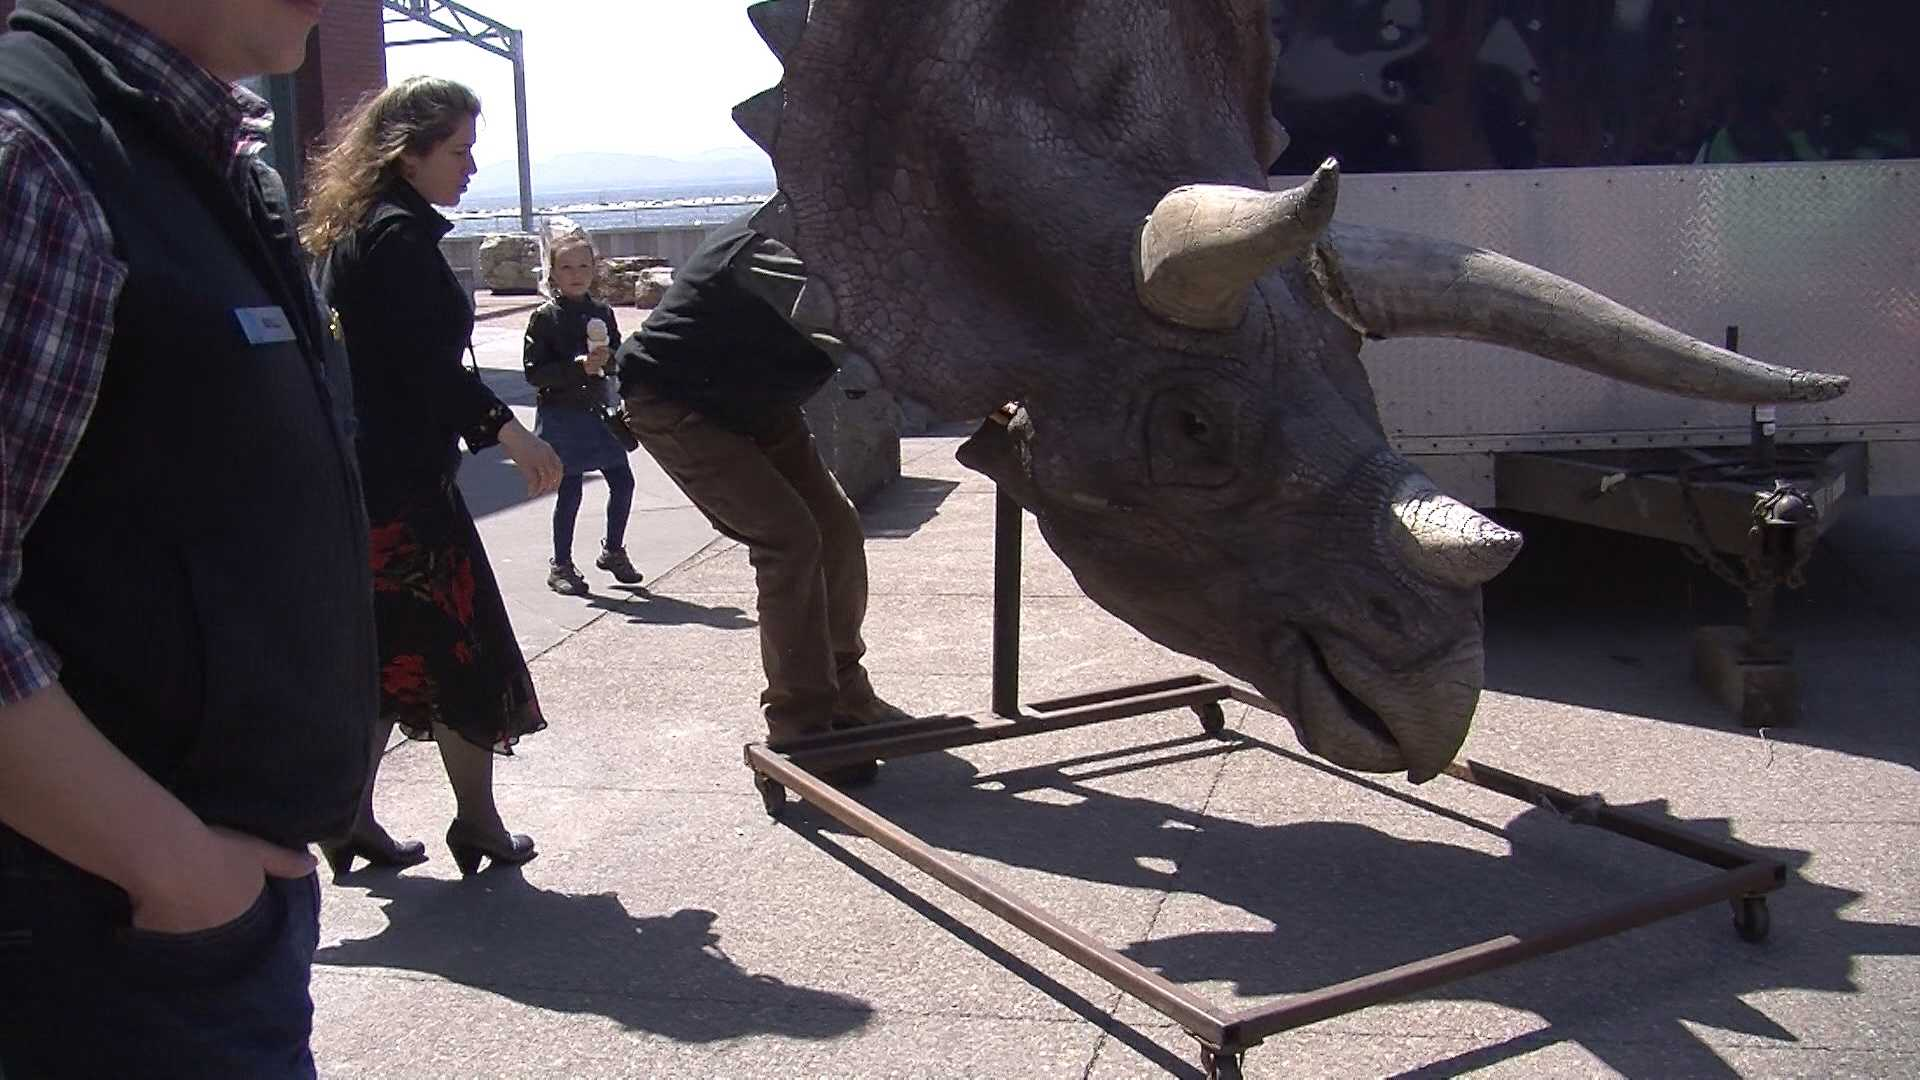 It was a busy day down by the waterfront, as staff at the ECHO Lake Aquarium and Science Center welcomed some prehistoric visitors from Hollywood.